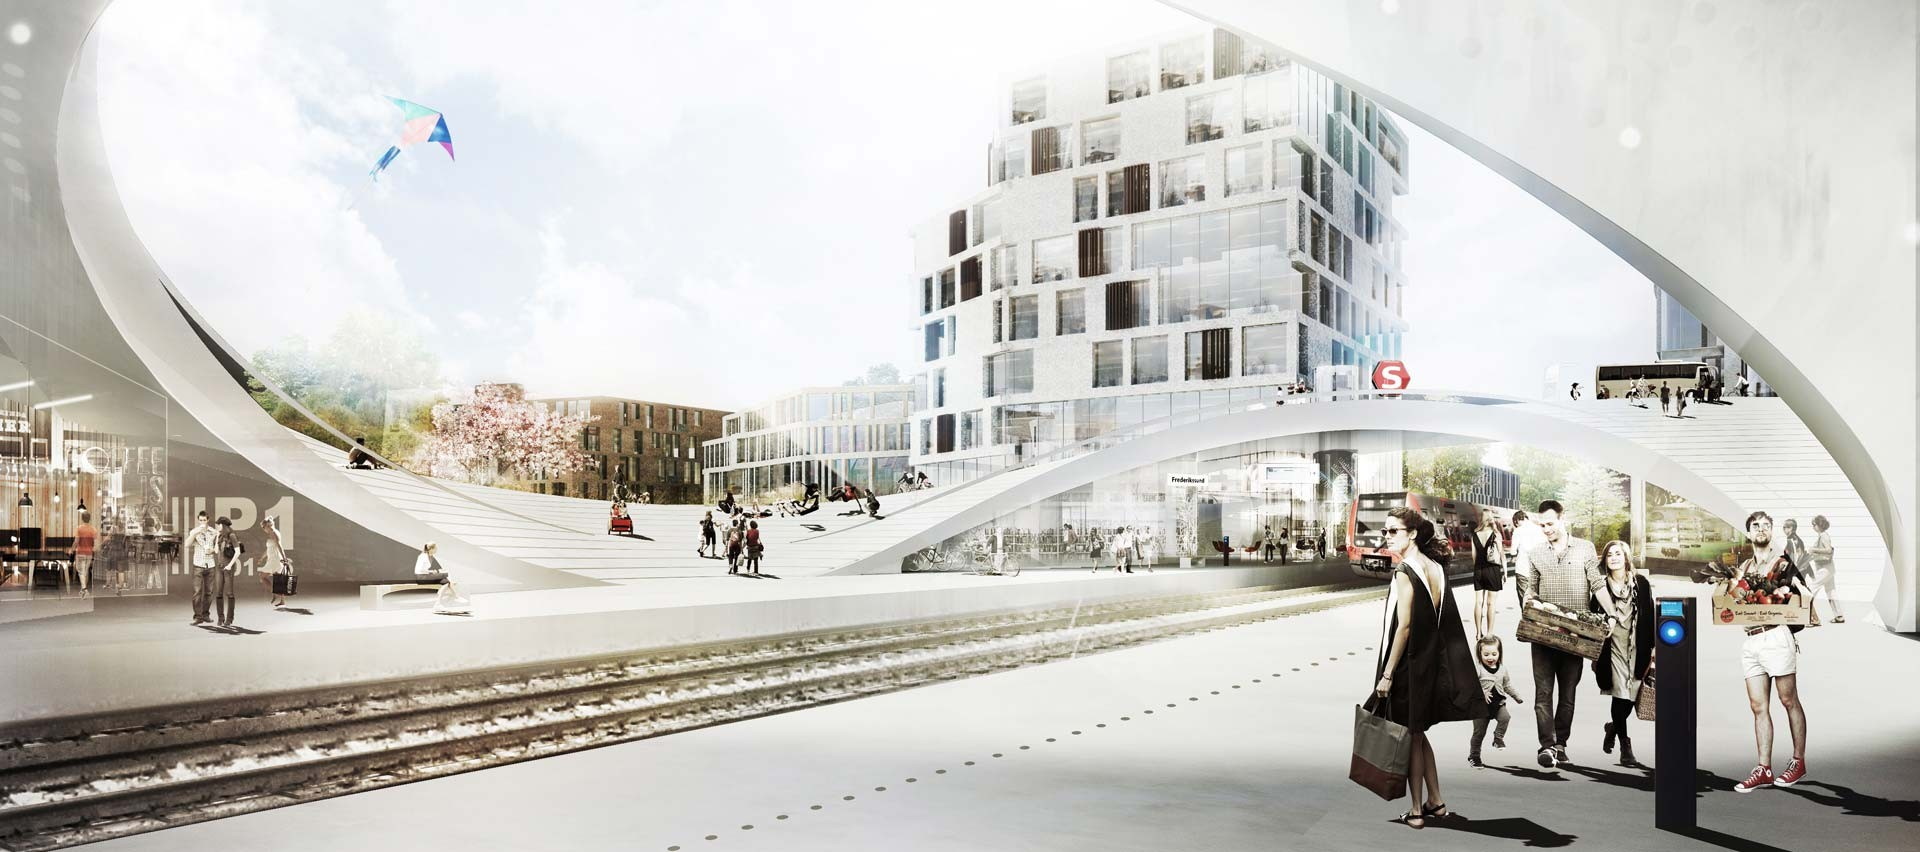 Henning_Larsen_Architects_Vinge_Train_Station